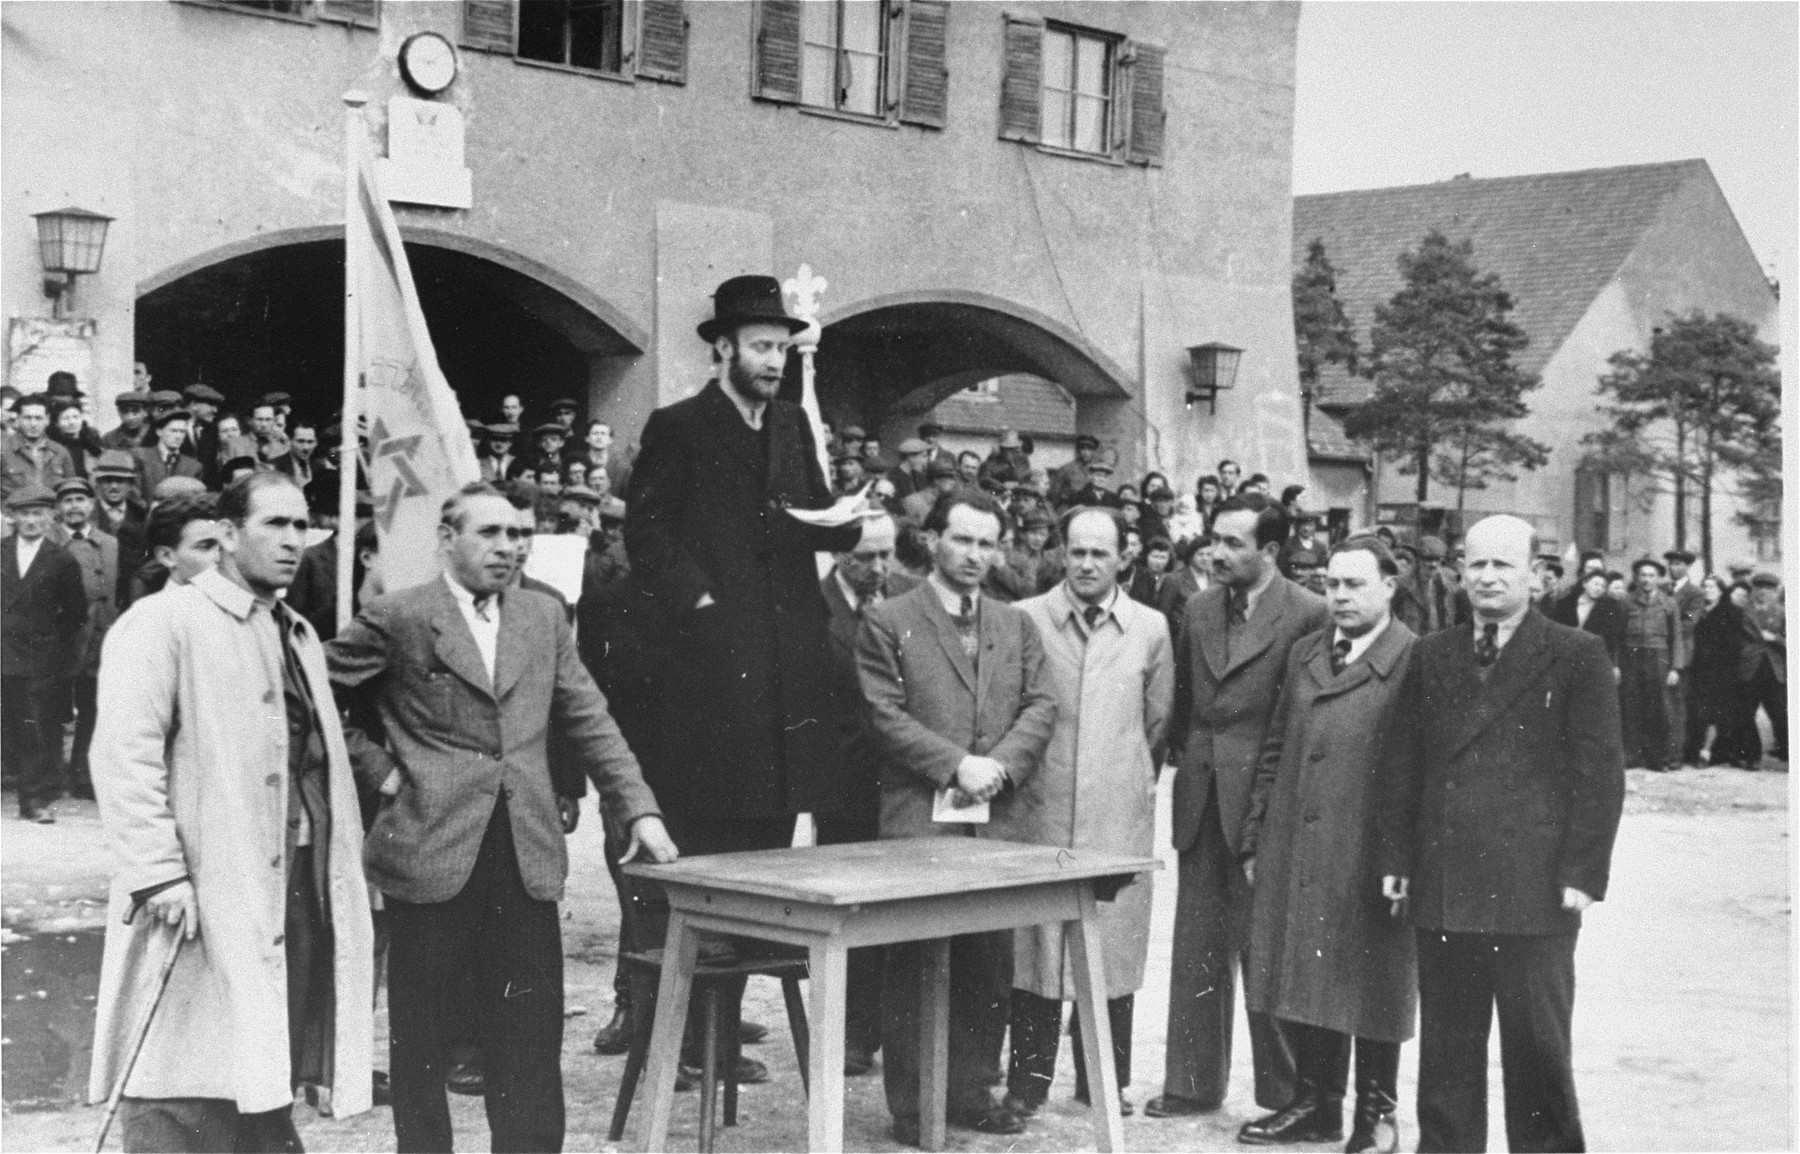 A Hungarian rabbi speaks at a demonstration in Foehrenwald displaced persons camp.    The DPs are protesting against the death sentence meted out by the British authorities in Palestine, to Dov Gruner, for bombing the King David Hotel in Jerusalem.